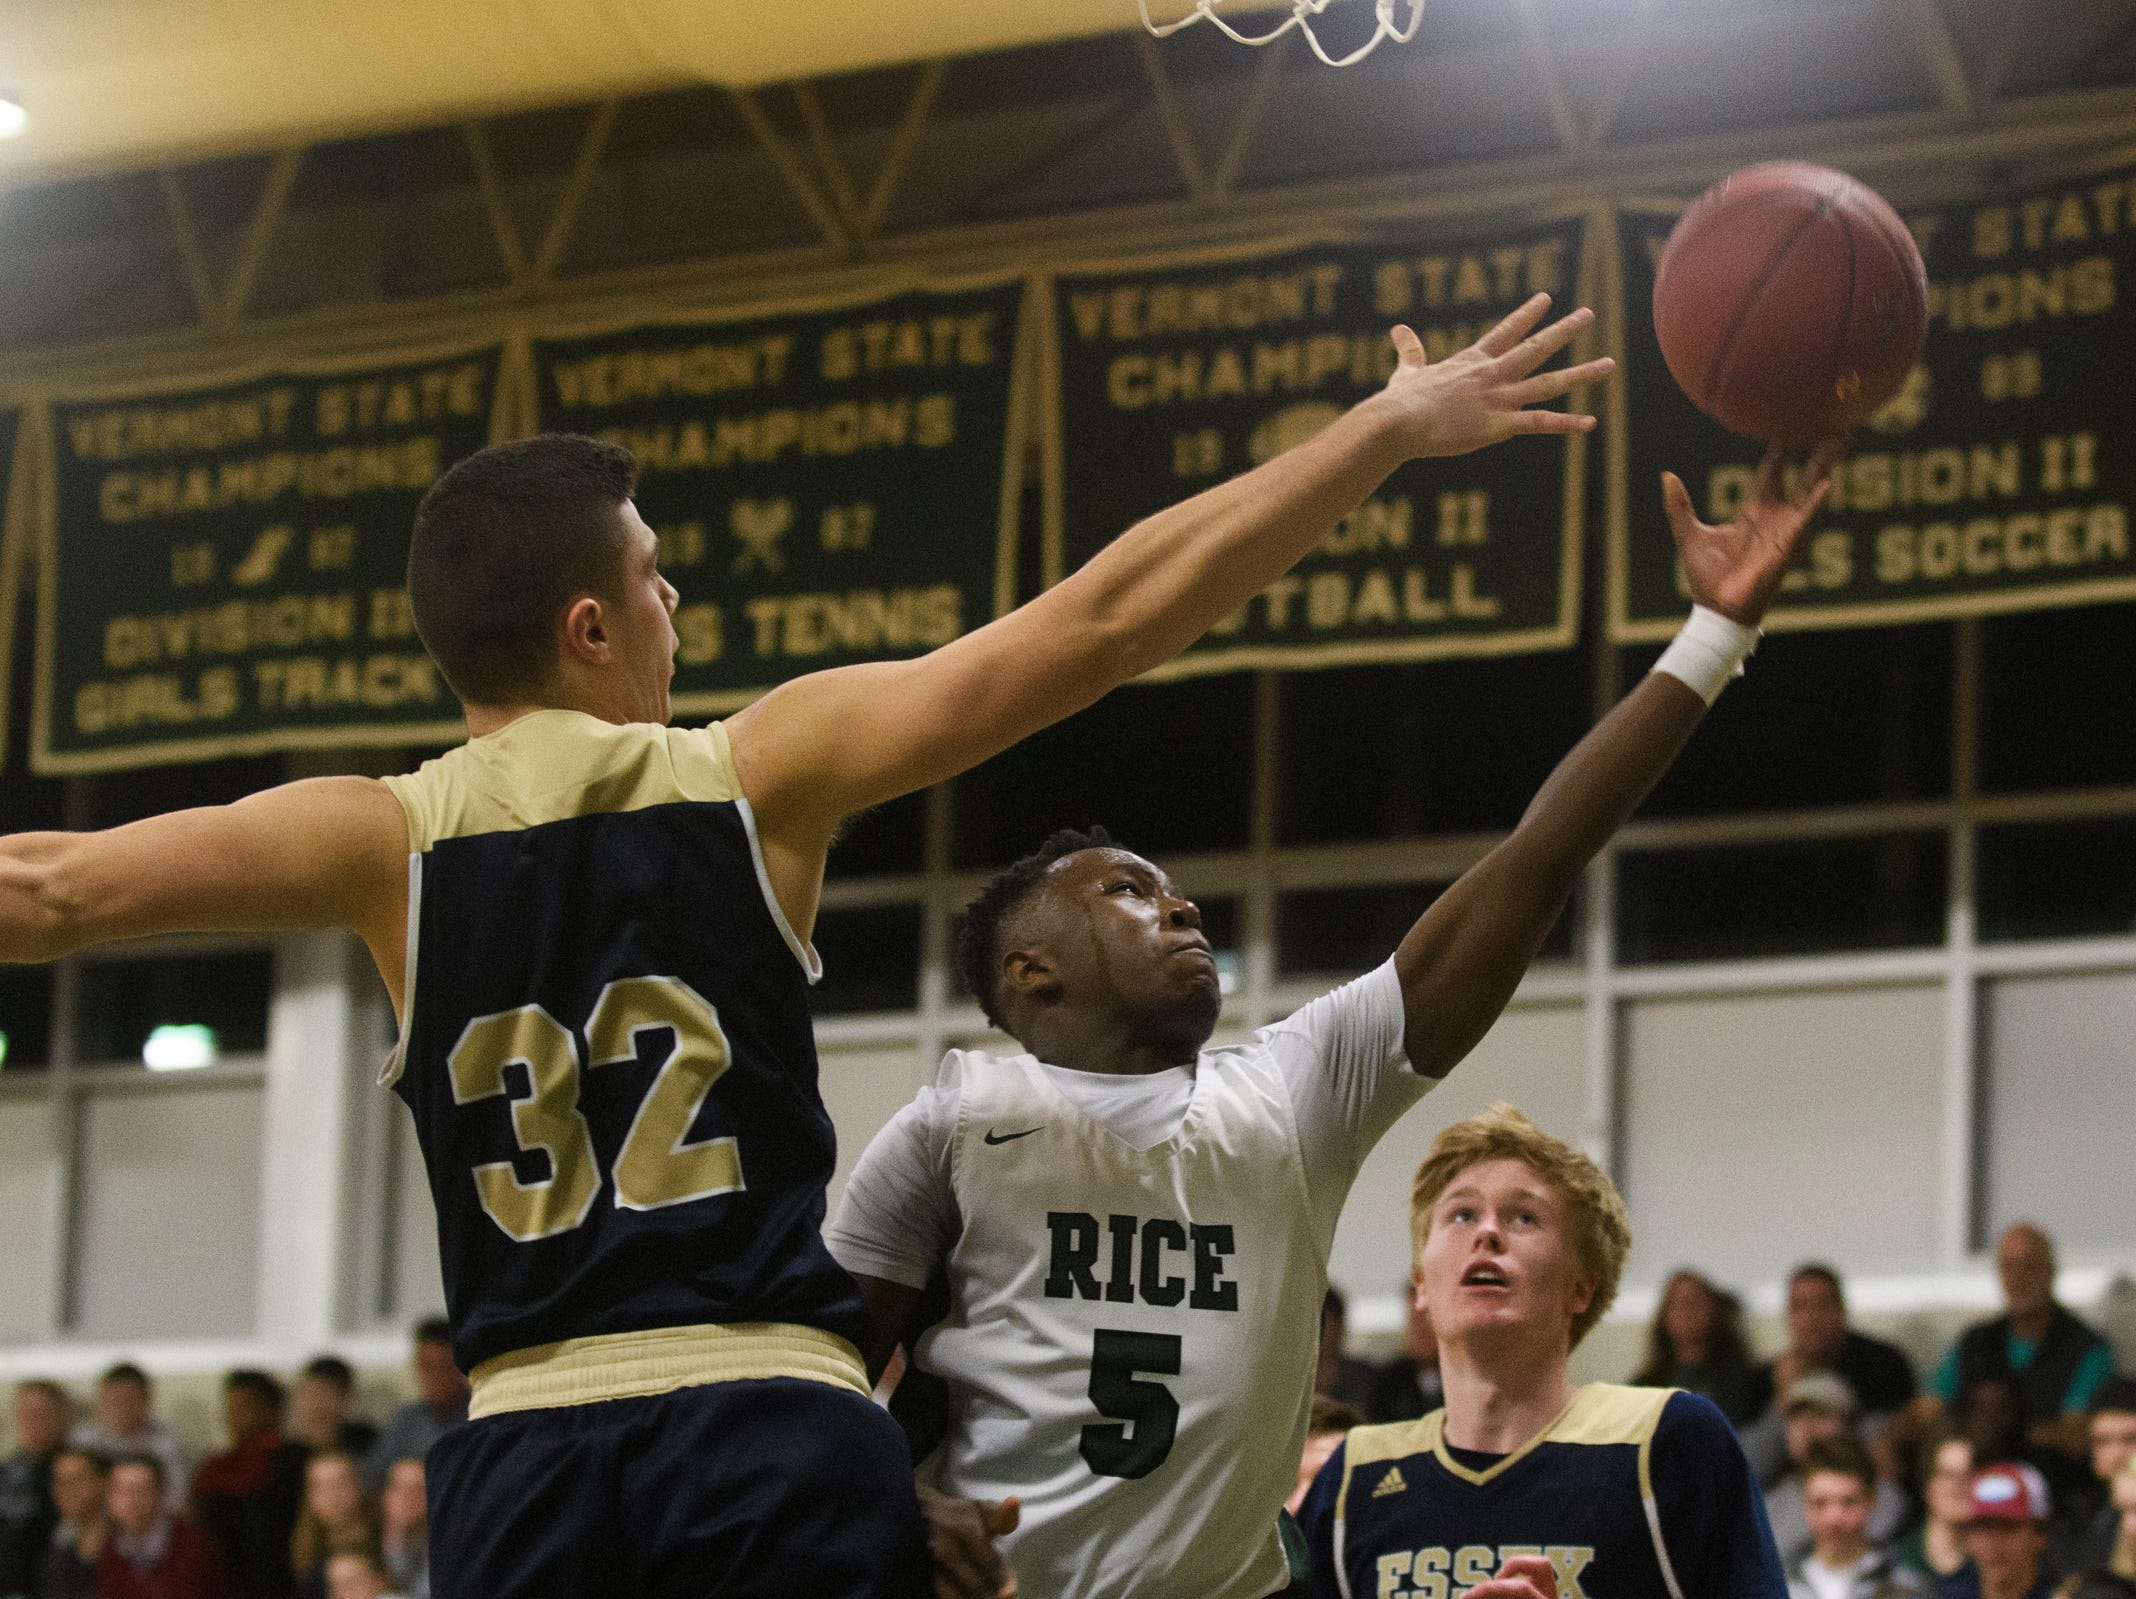 Rice's Mo Awayle (5) leaps for a lay up past Essex's Adin Peco (32) during the boys quarterfinal basketball game between the Essex Hornets and the Rice Green Knights at Rice Memorial High School on Friday night March 8, 2019 in South Burlington, Vermont.